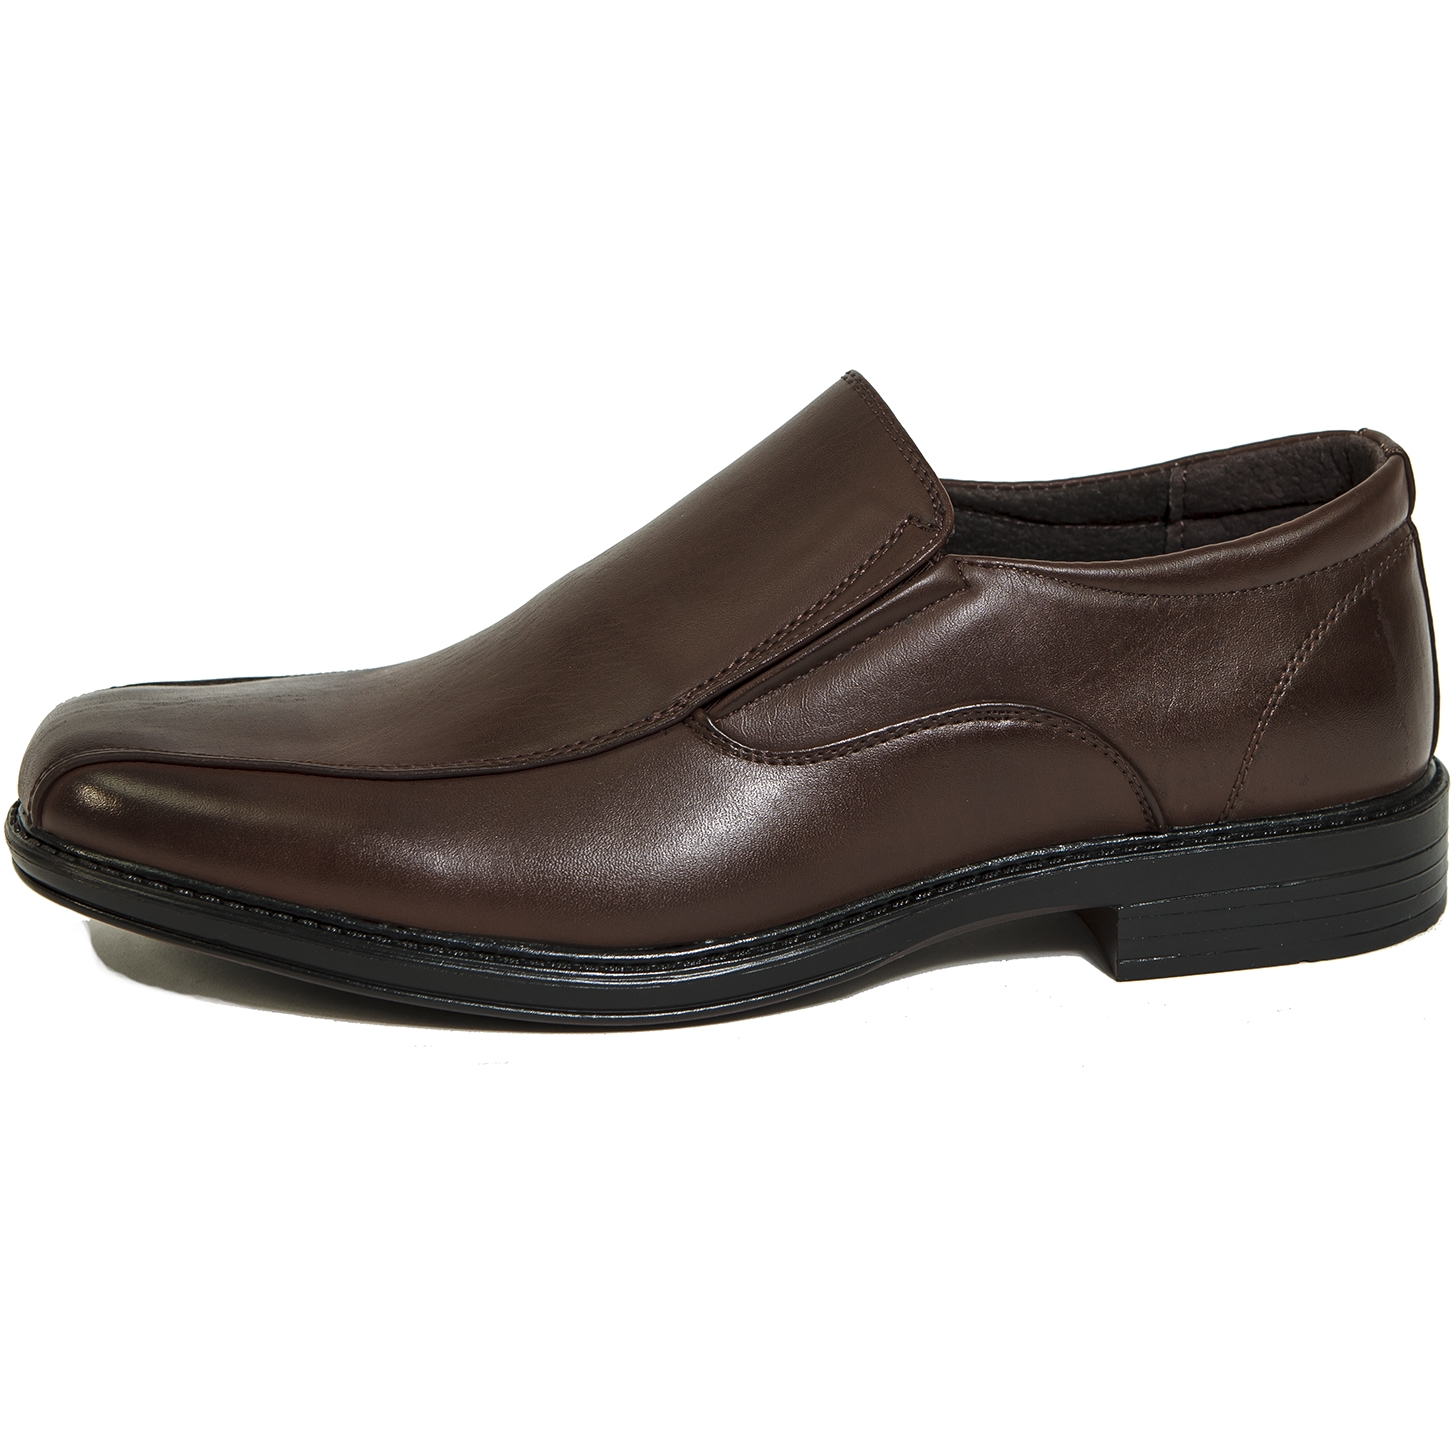 5ebf6136995c alpine swiss - Alpine Swiss Mens Dress Shoes Leather Lined Slip On Loafers  Good for Suit Jeans - Walmart.com